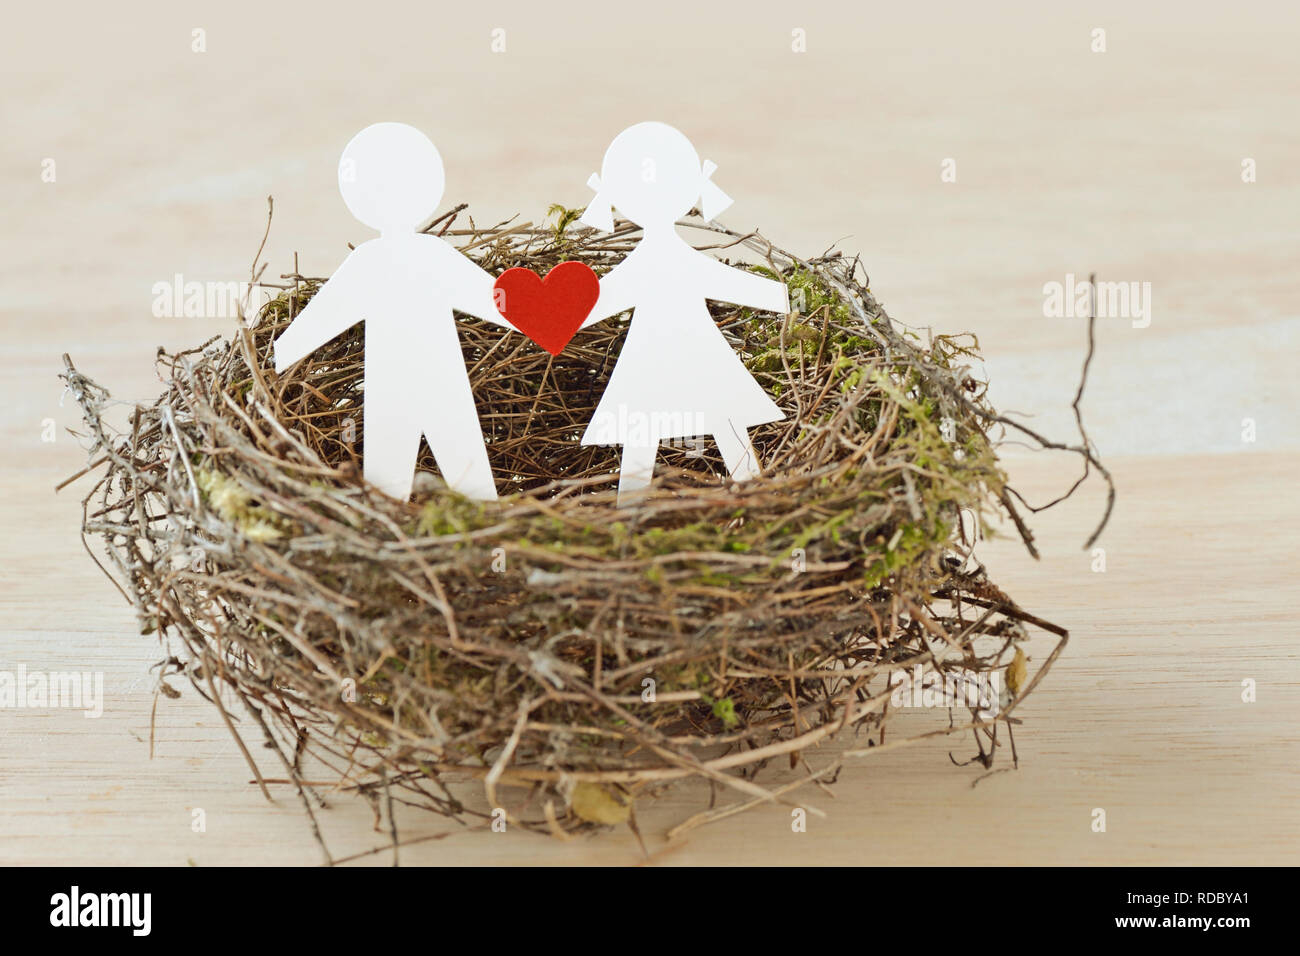 Paper children with a heart in nest - Child protection concept - Stock Image